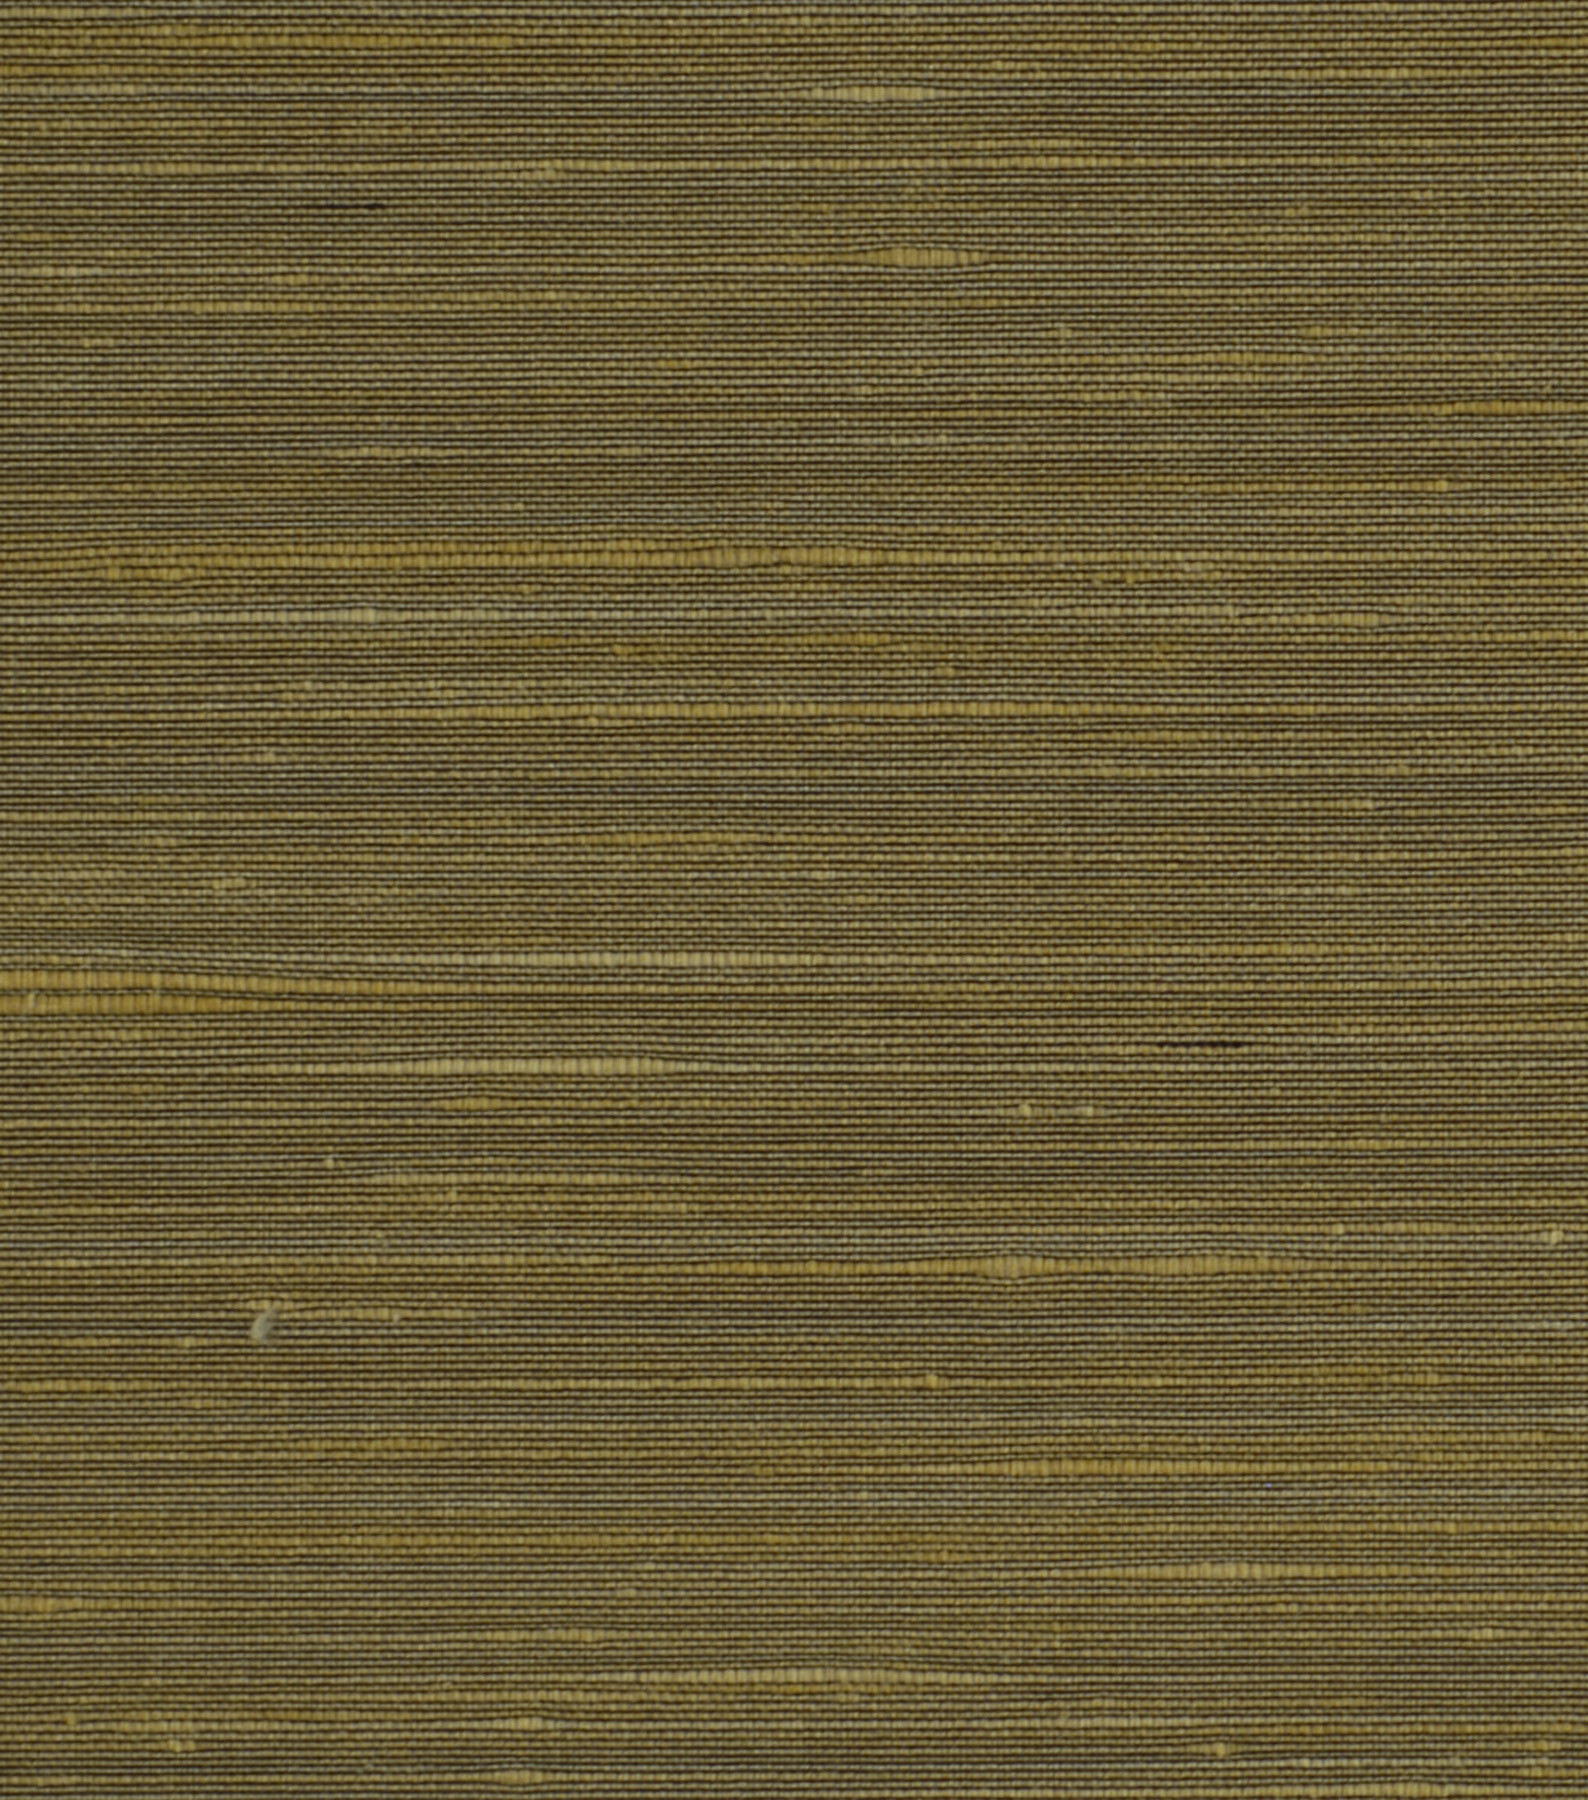 Home Decor 8\u0022x8\u0022 Fabric Swatch-Solid Fabric Signature Series Dali Twig